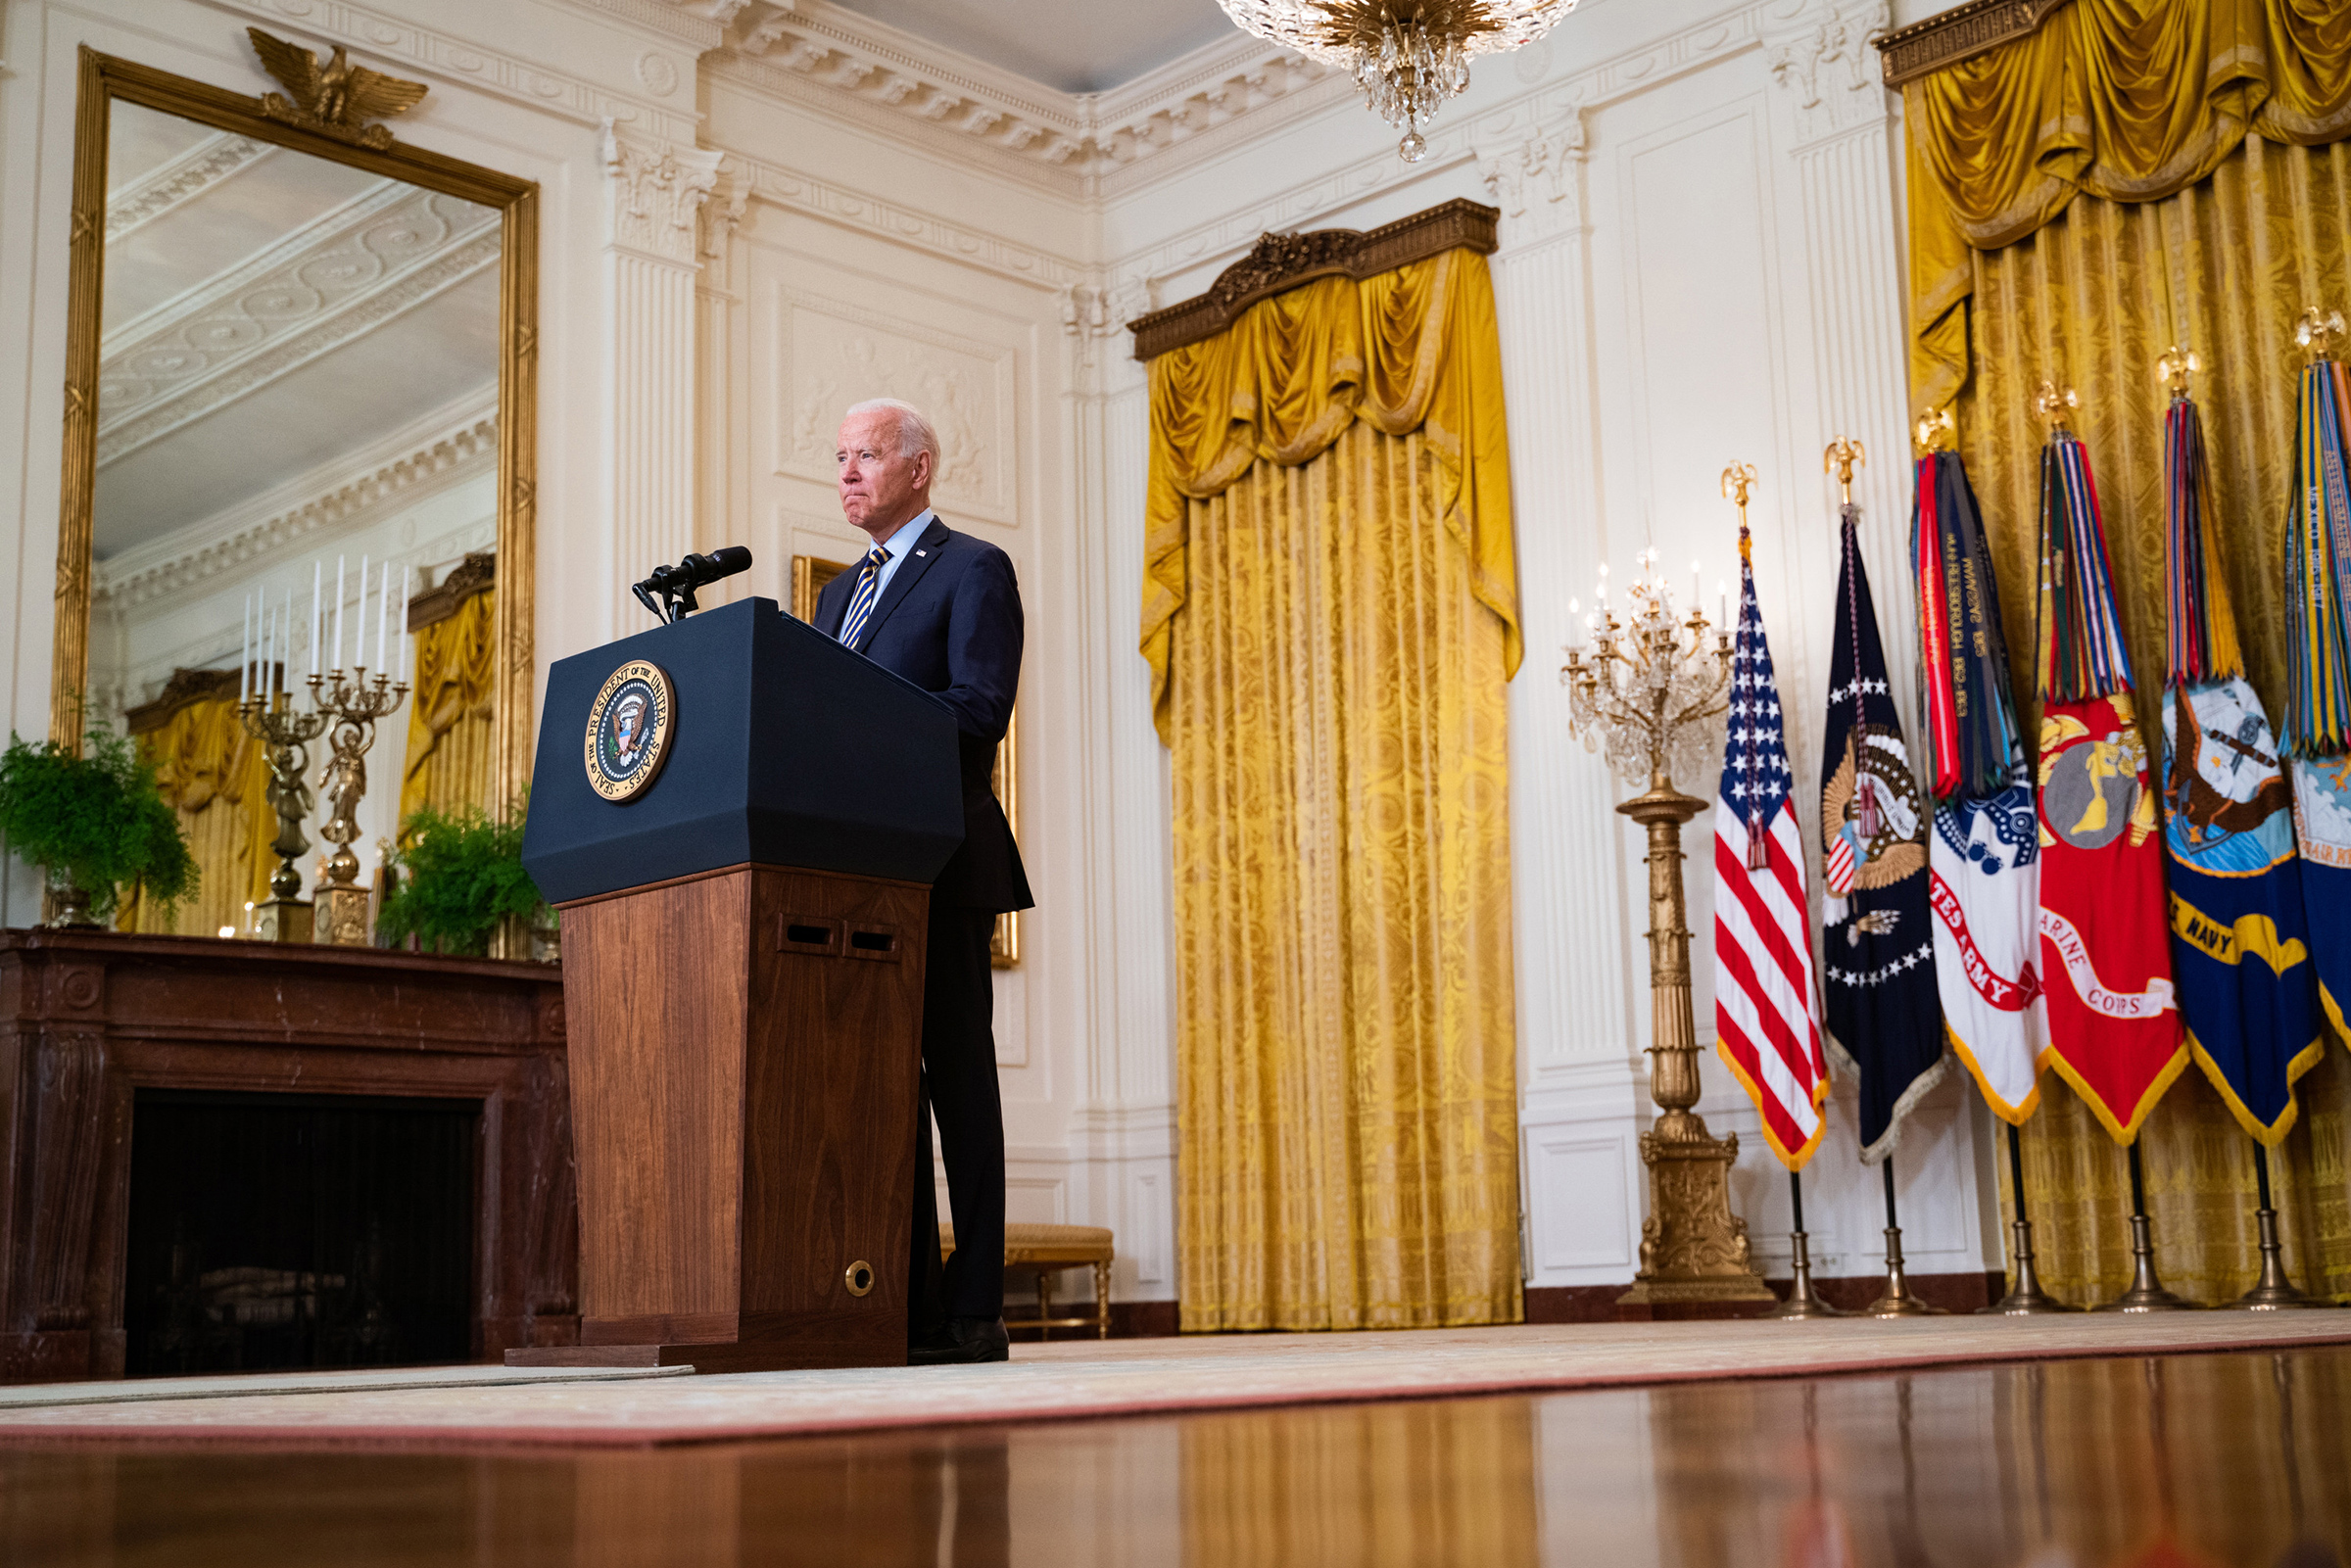 President Biden delivers remarks about the U.S. withdrawal from Afghanistan at the White House in Washington, D.C., on July 8, 2021.